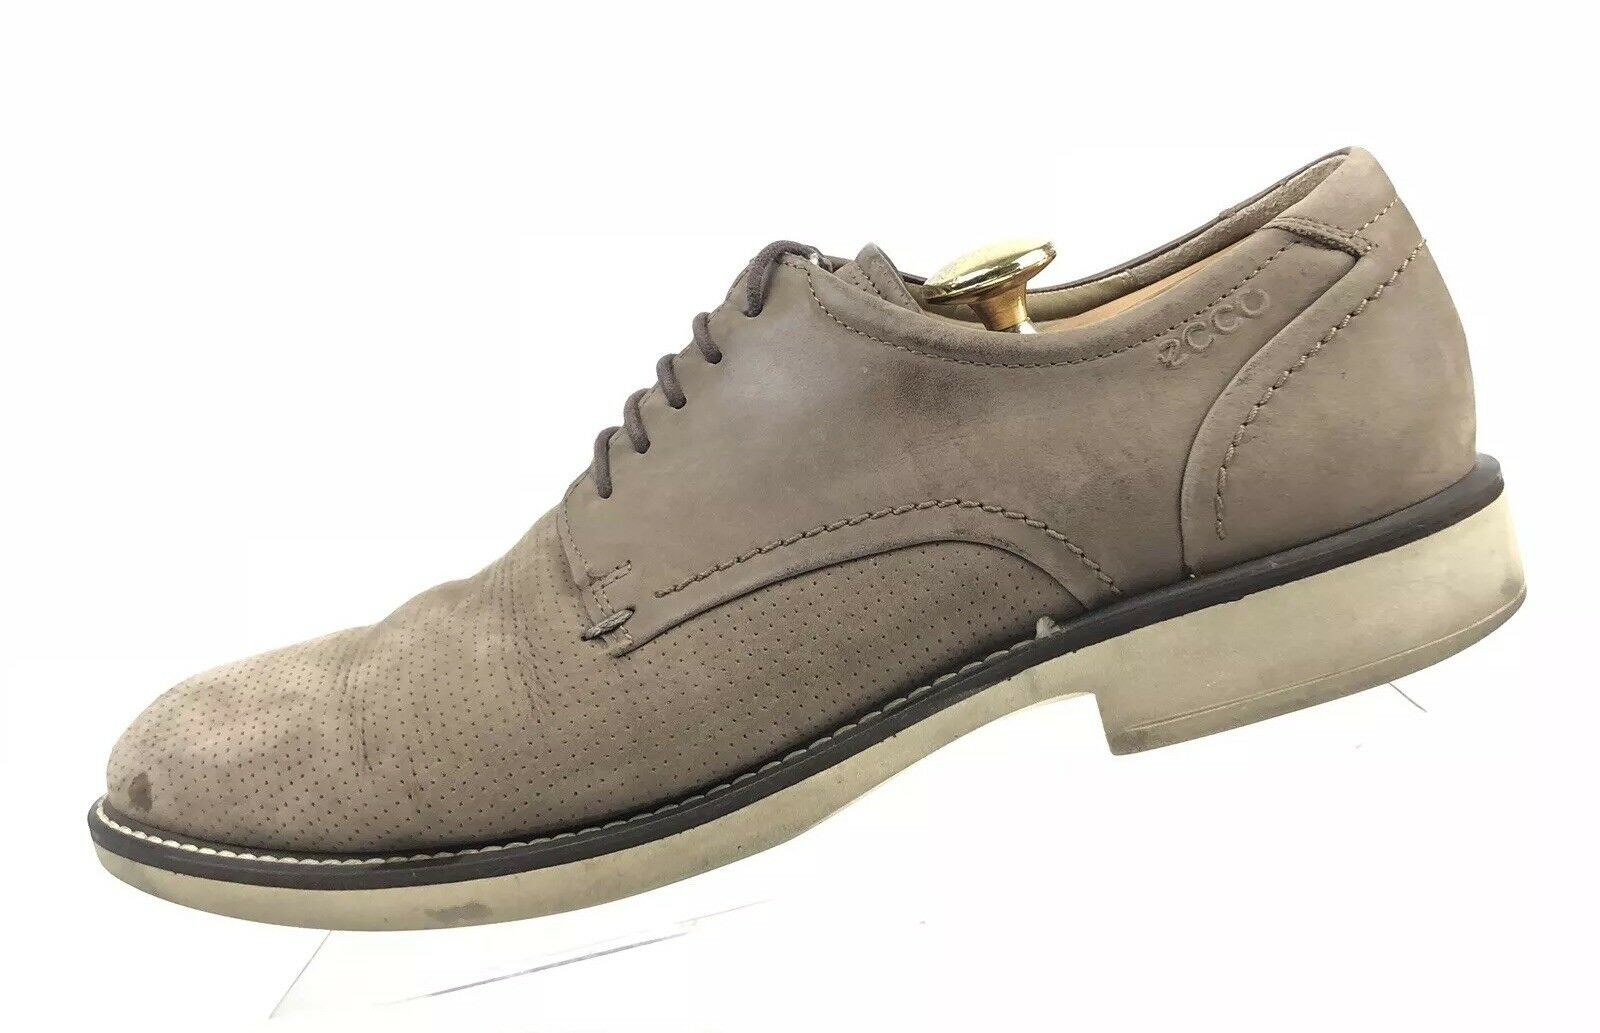 Ecco Size US 10 - 10.5 Mens brown Suede Oxford shoes A1014